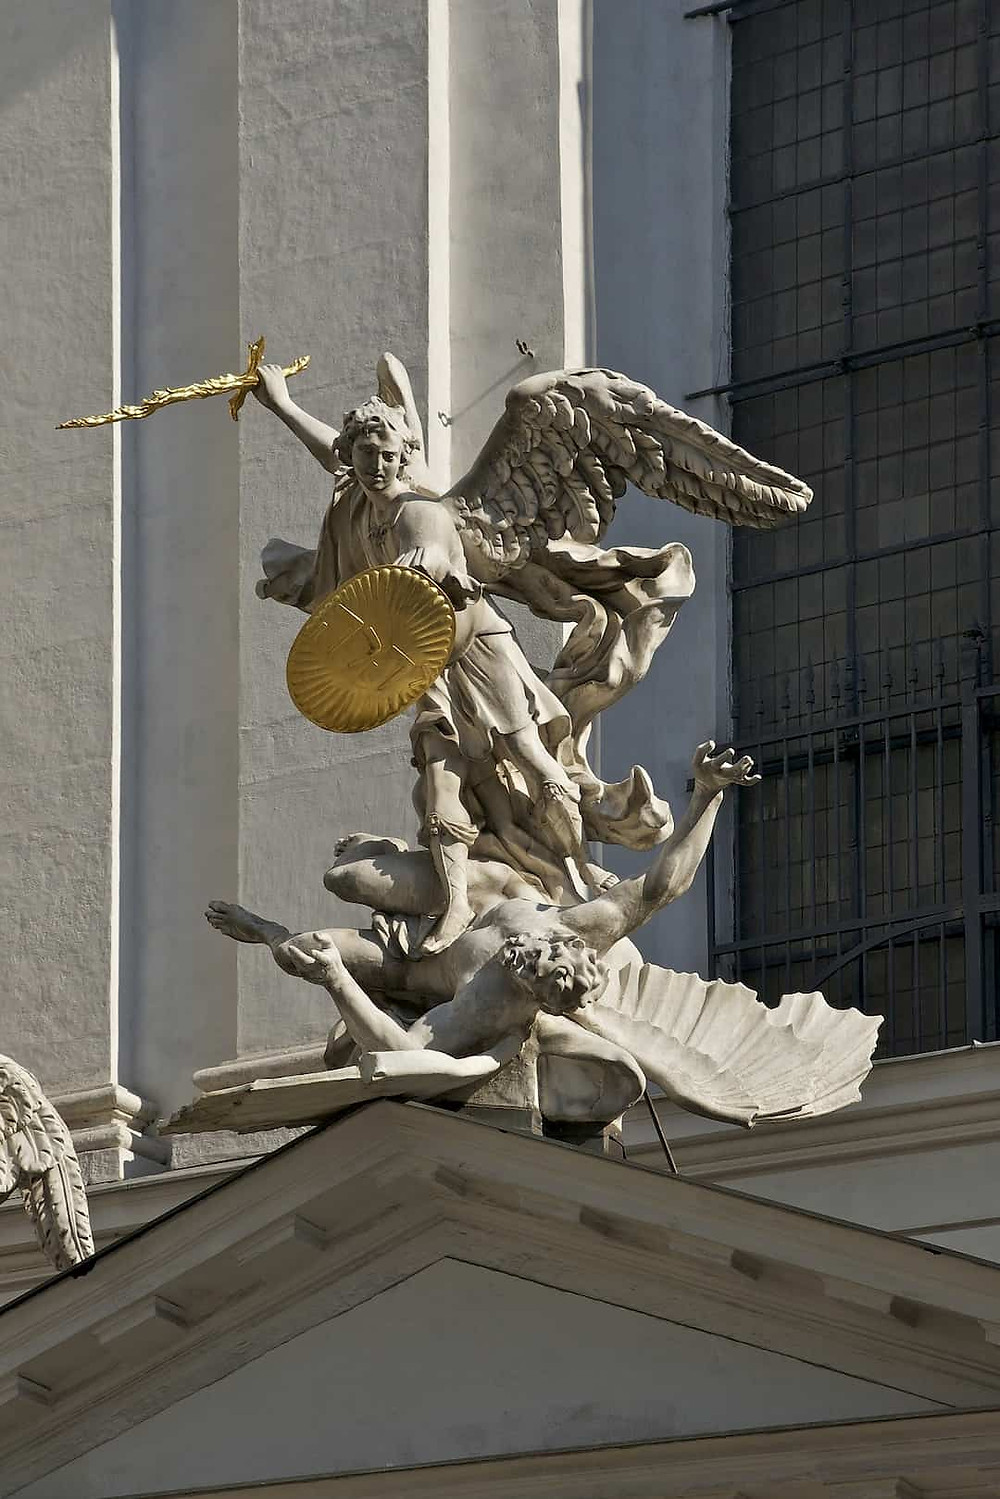 Statue of Archangel Michael in battle